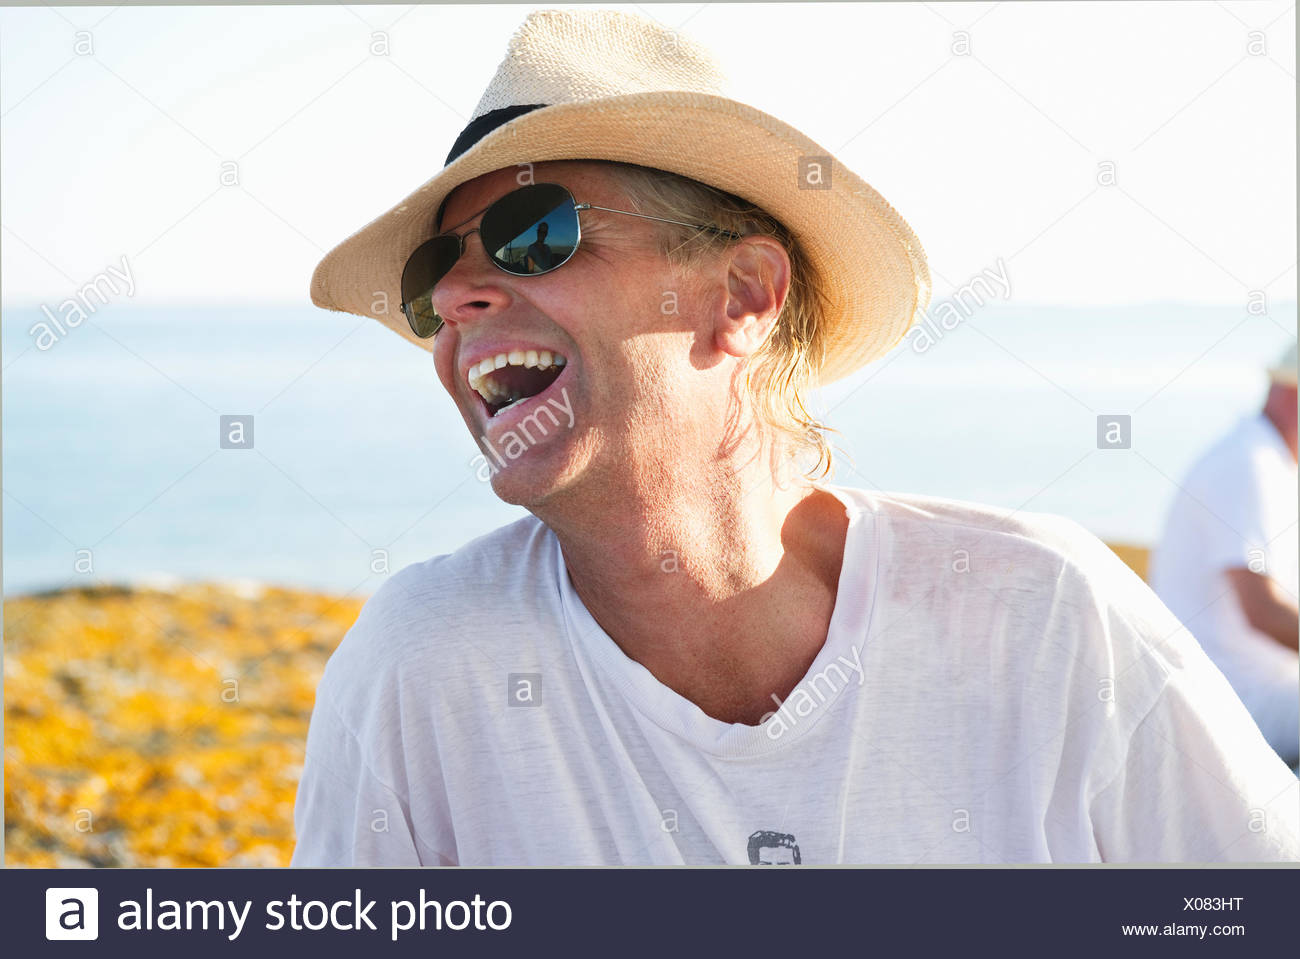 Portrait of smiling man wearing sunglasses and straw hat - Stock Image